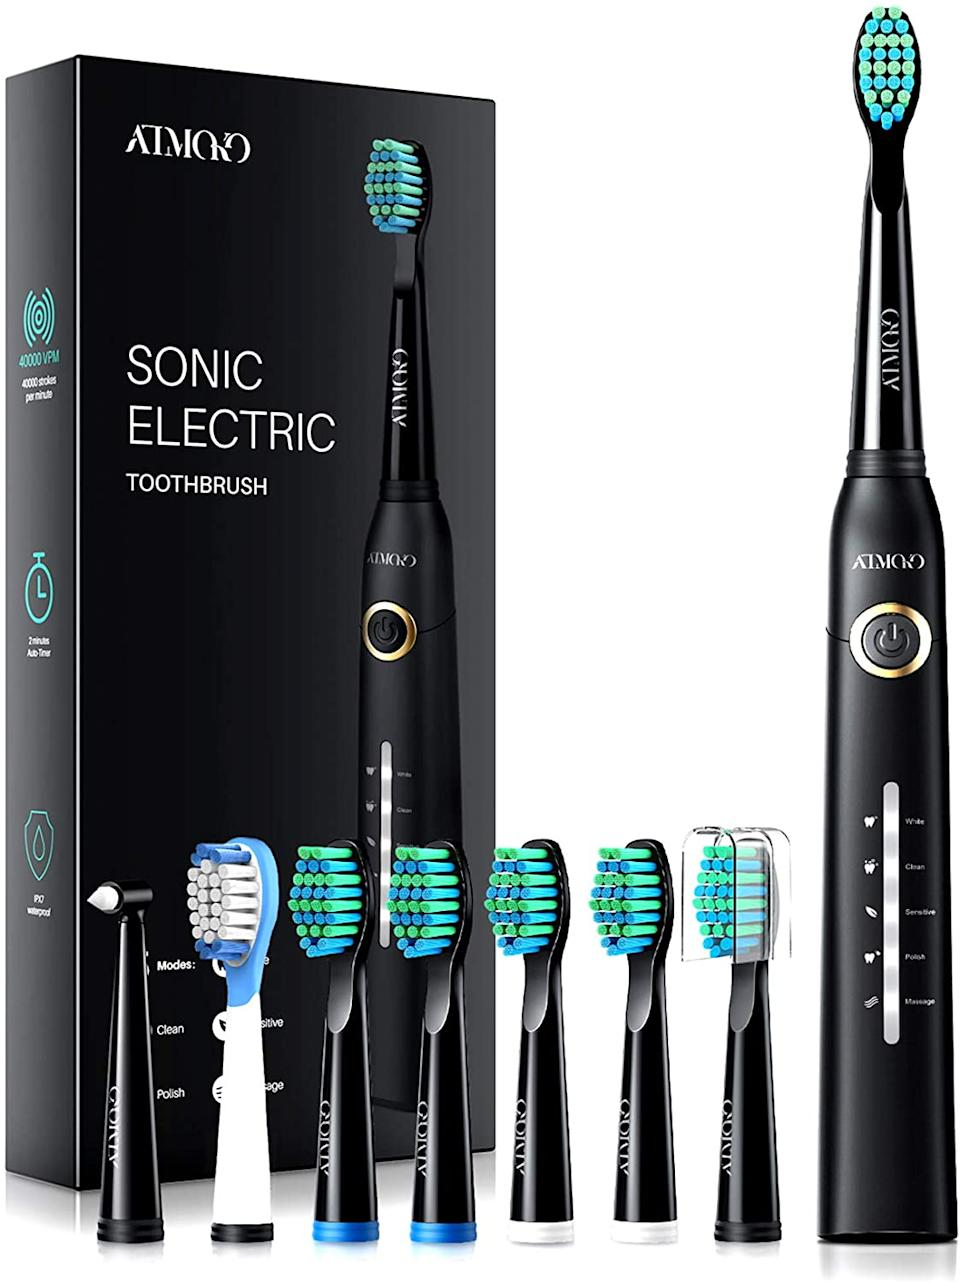 ATMOKO Electric Toothbrushes for Adults. Image via Amazon.